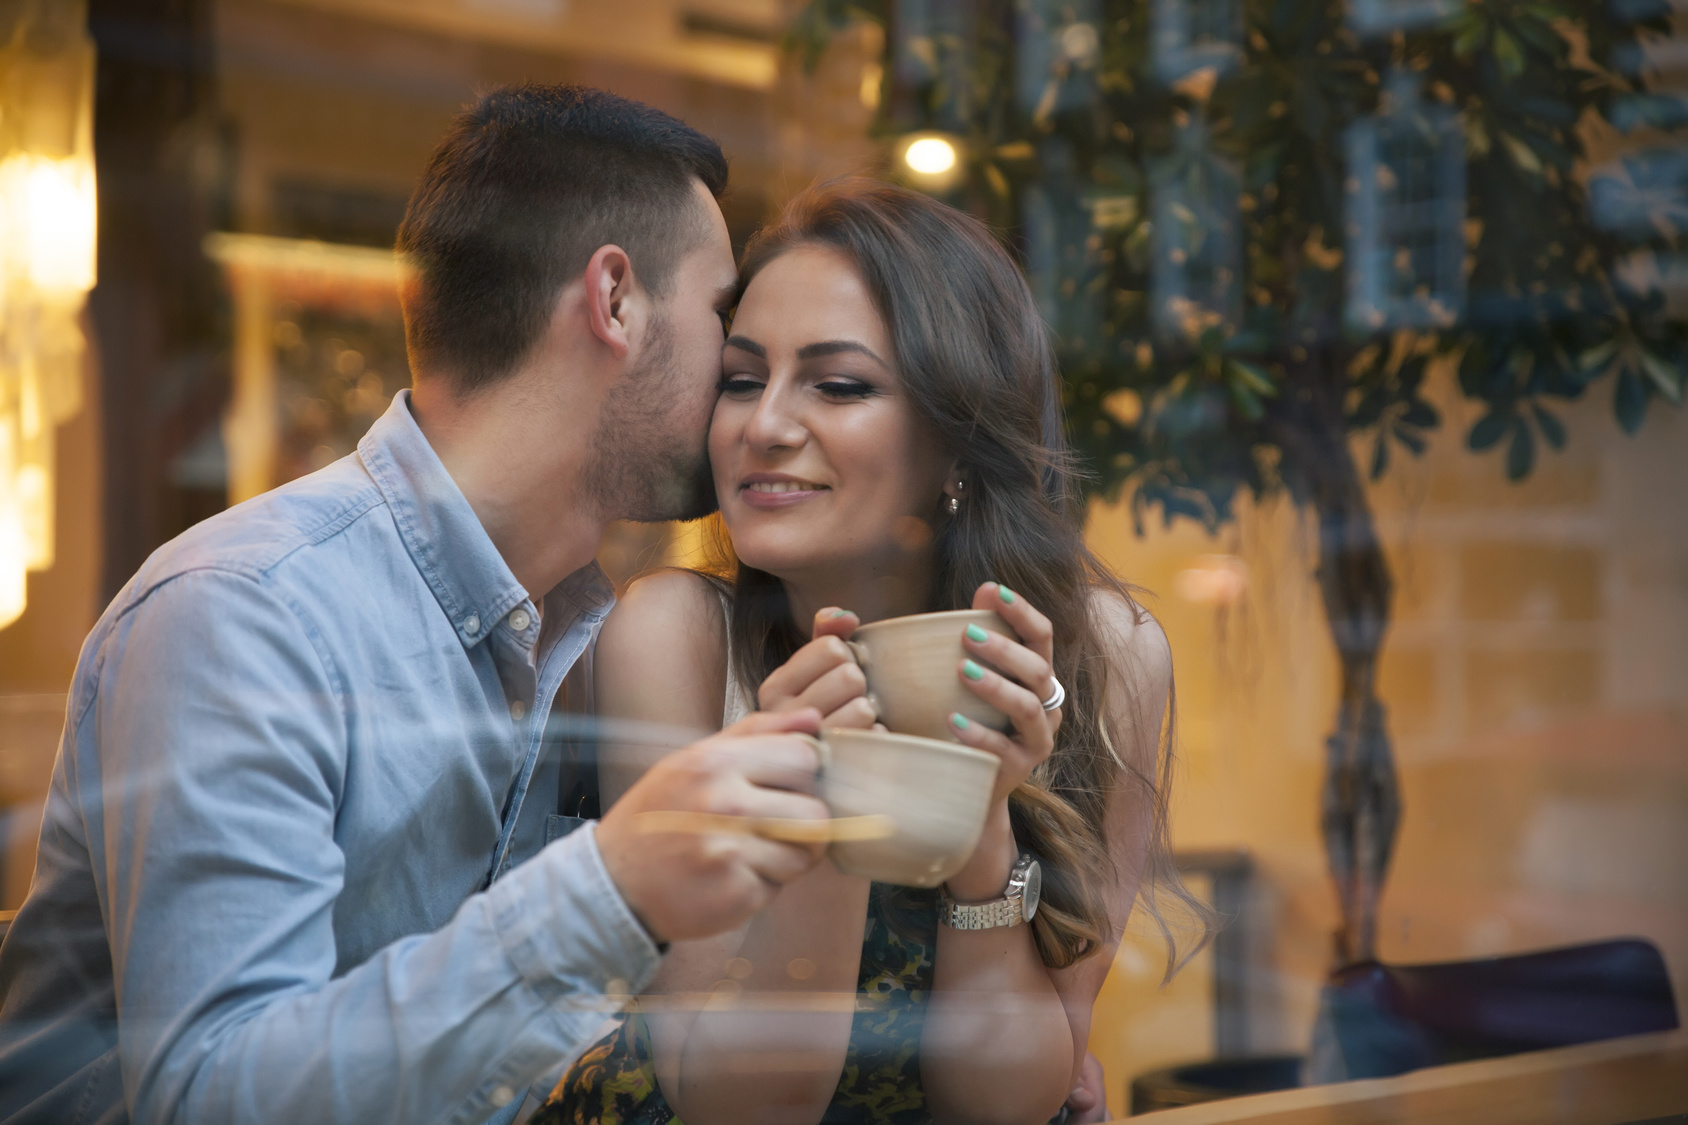 young couple flirting on a date in cafe